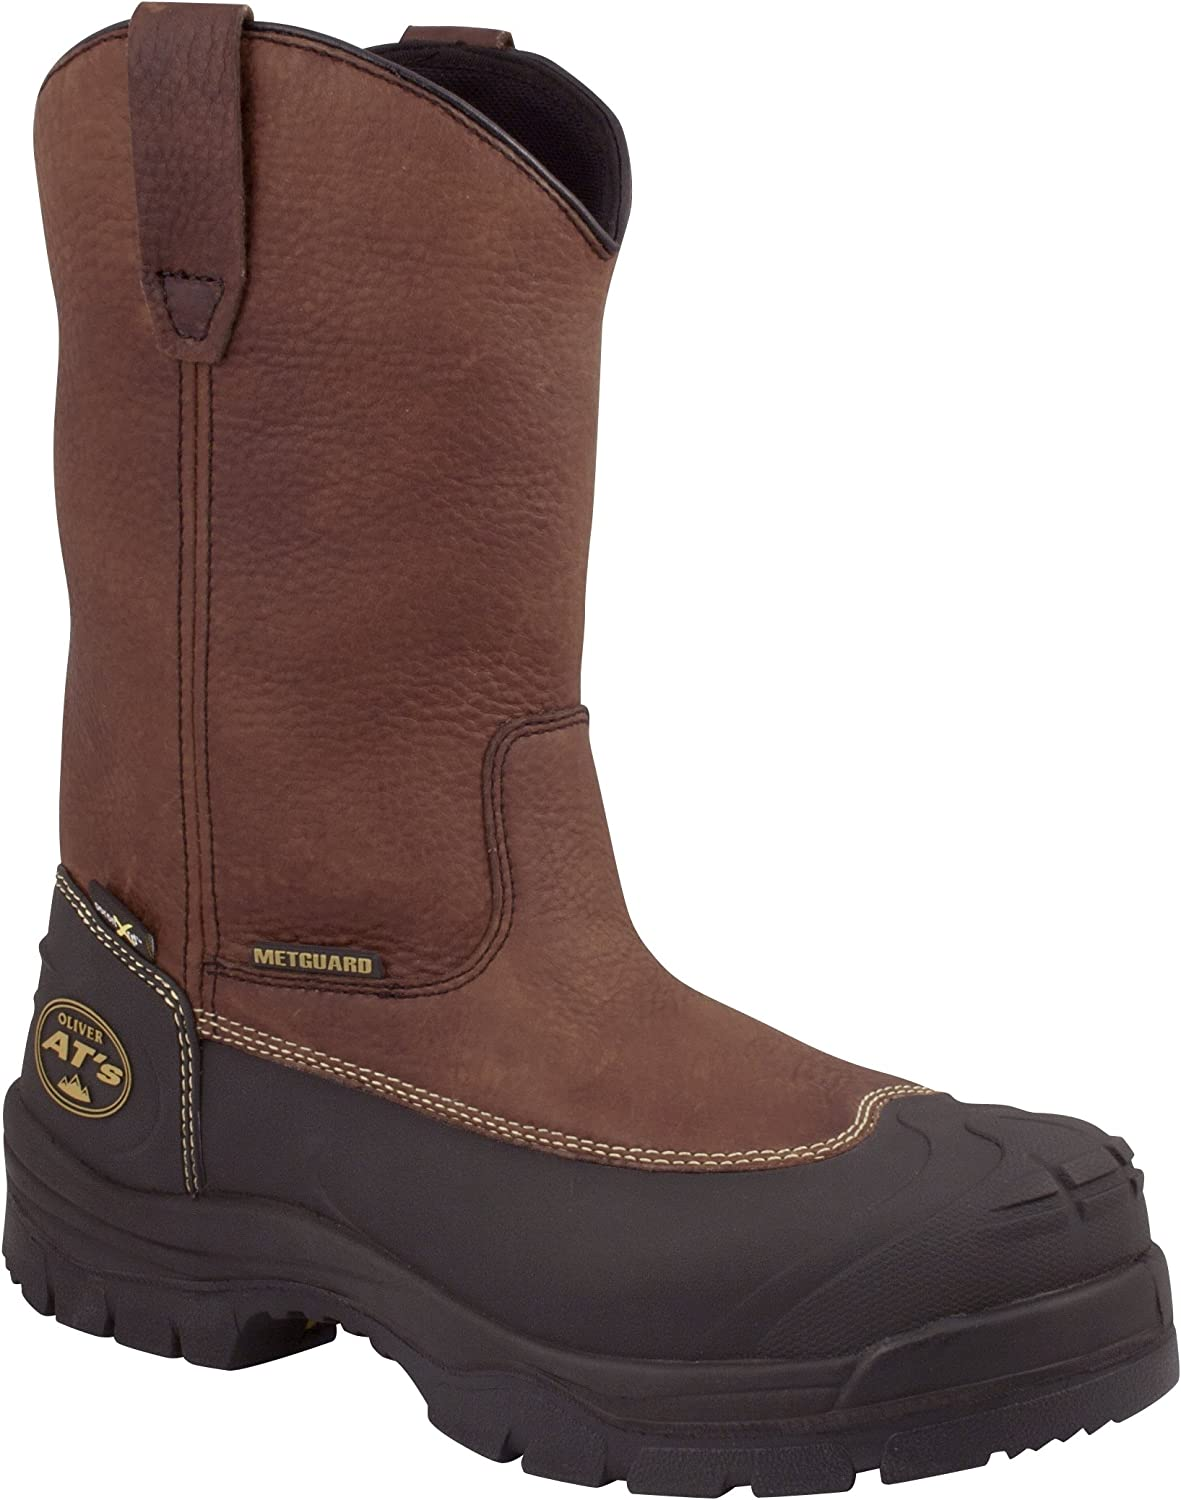 Oliver Footwear 65393/9.5 10-Inch Pull On Riggers Boots, Size-9.5